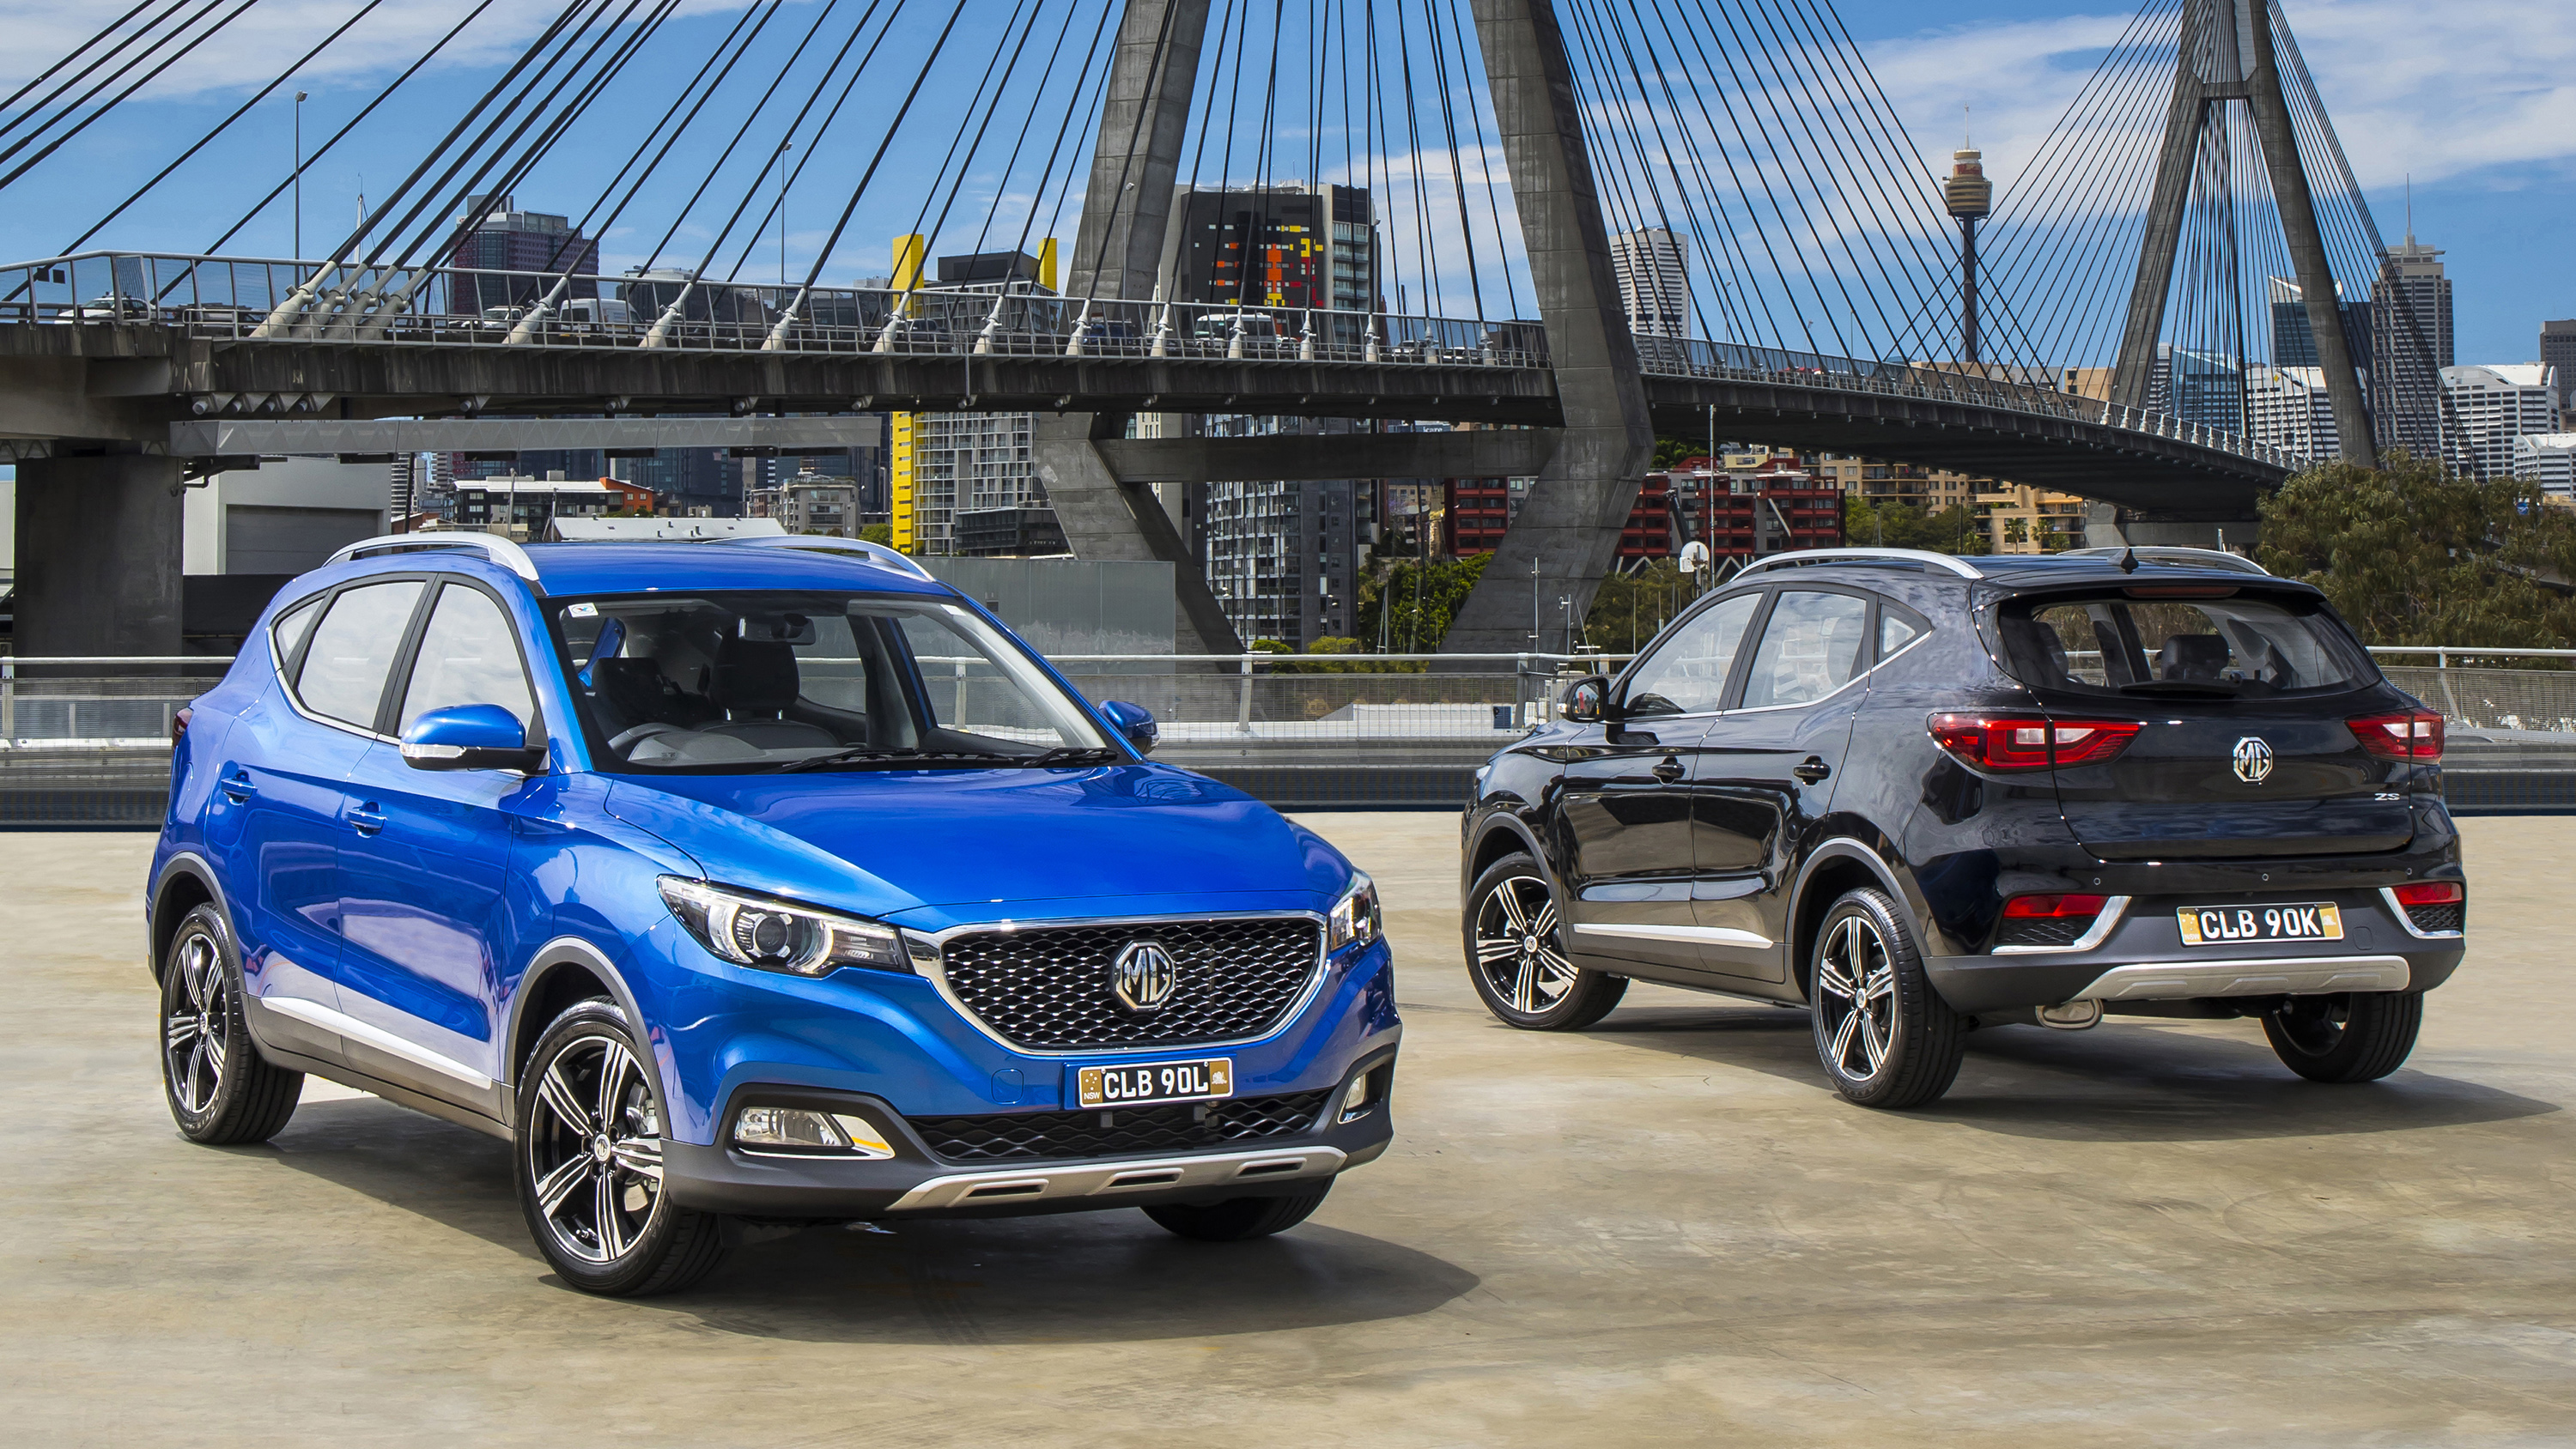 2018 Mg Zs Pricing And Specs Photos